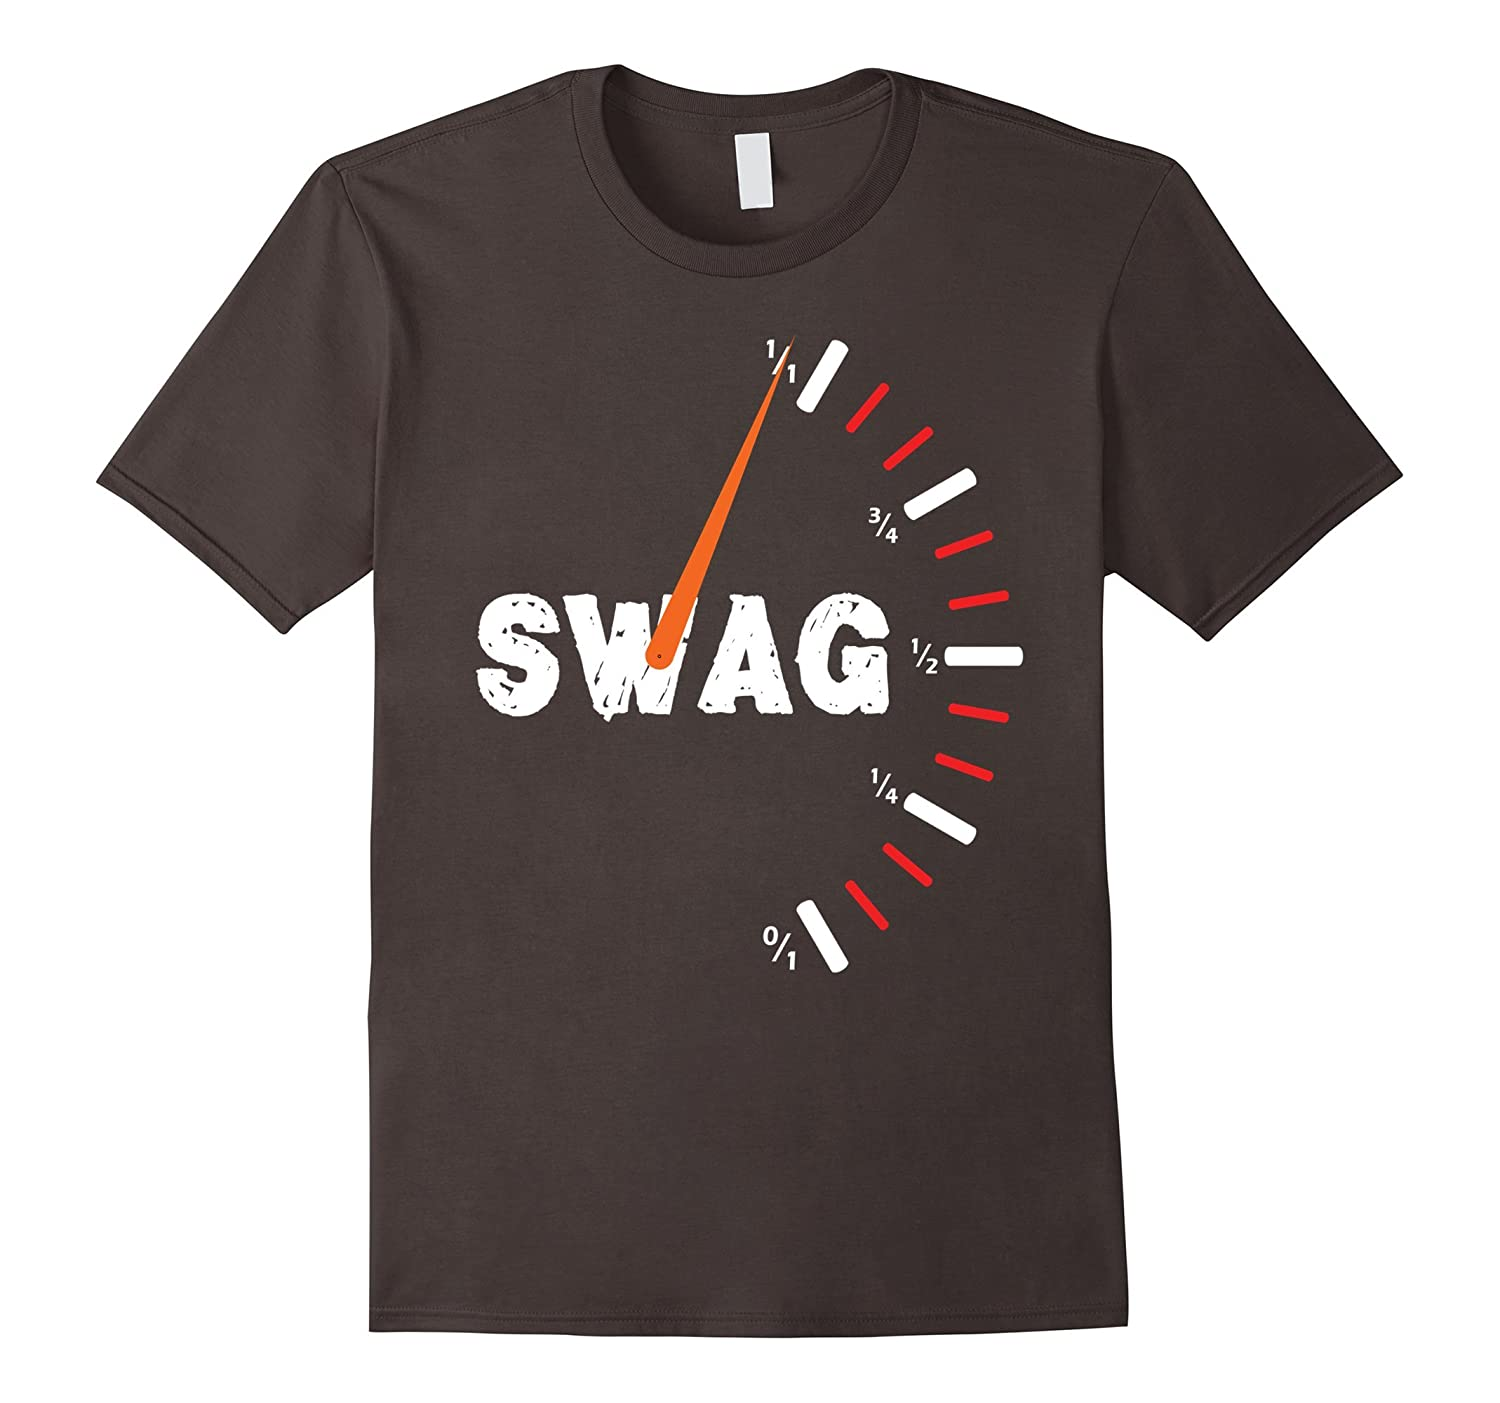 Swag t shirt urban clothing outfits for men women boys for Urban streetwear t shirts